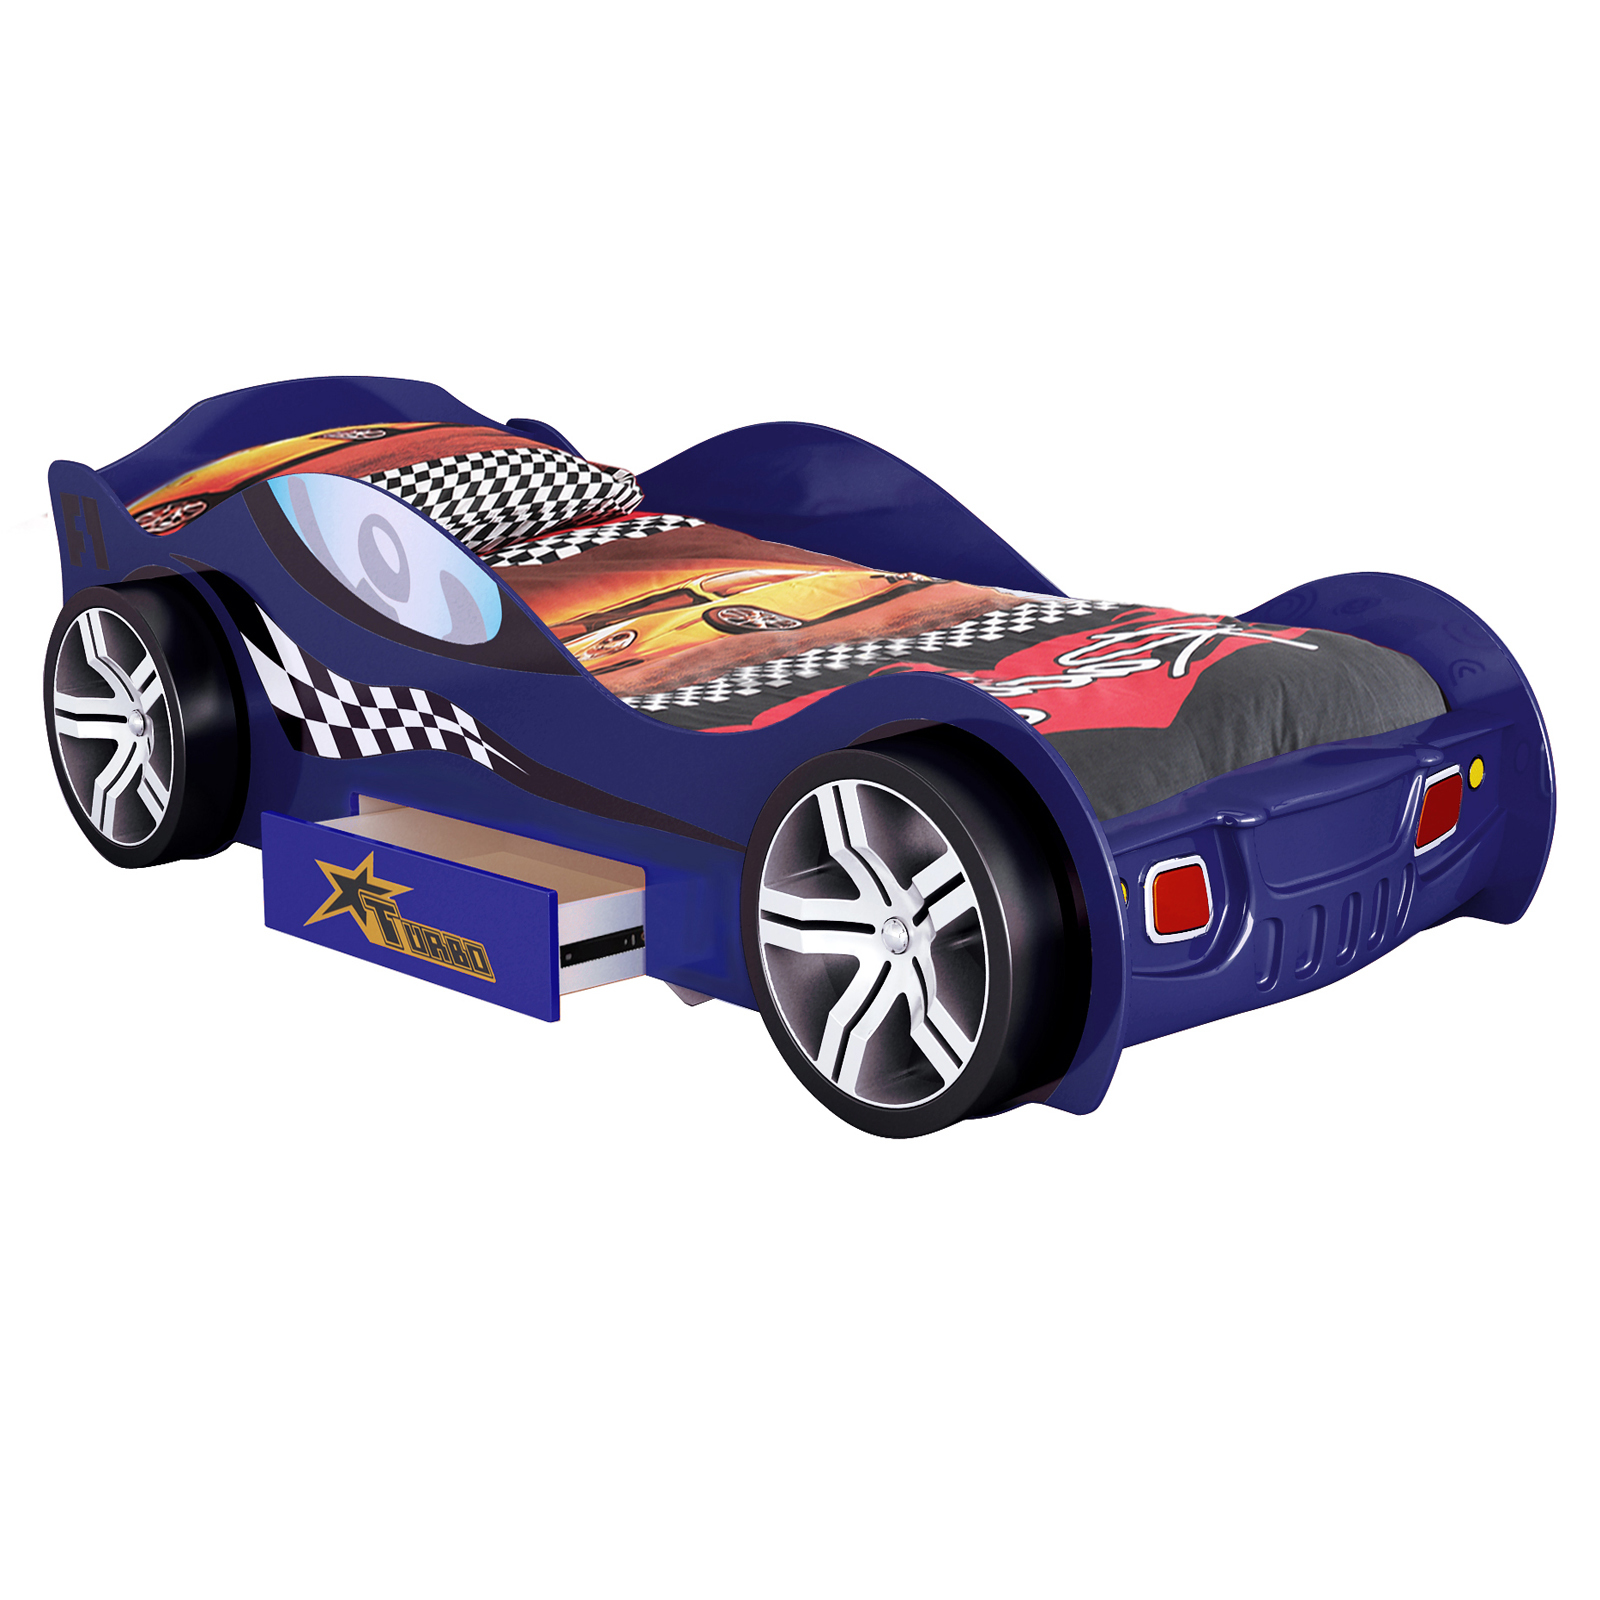 ga racing purple creative wells car walmart twin kids automotive race sheet bed rug as with on design wooden ferrari remarkable bedroom kidkraft super beds then jeep batman mcqueen sale room excellent youth toddler children boys placed police blue